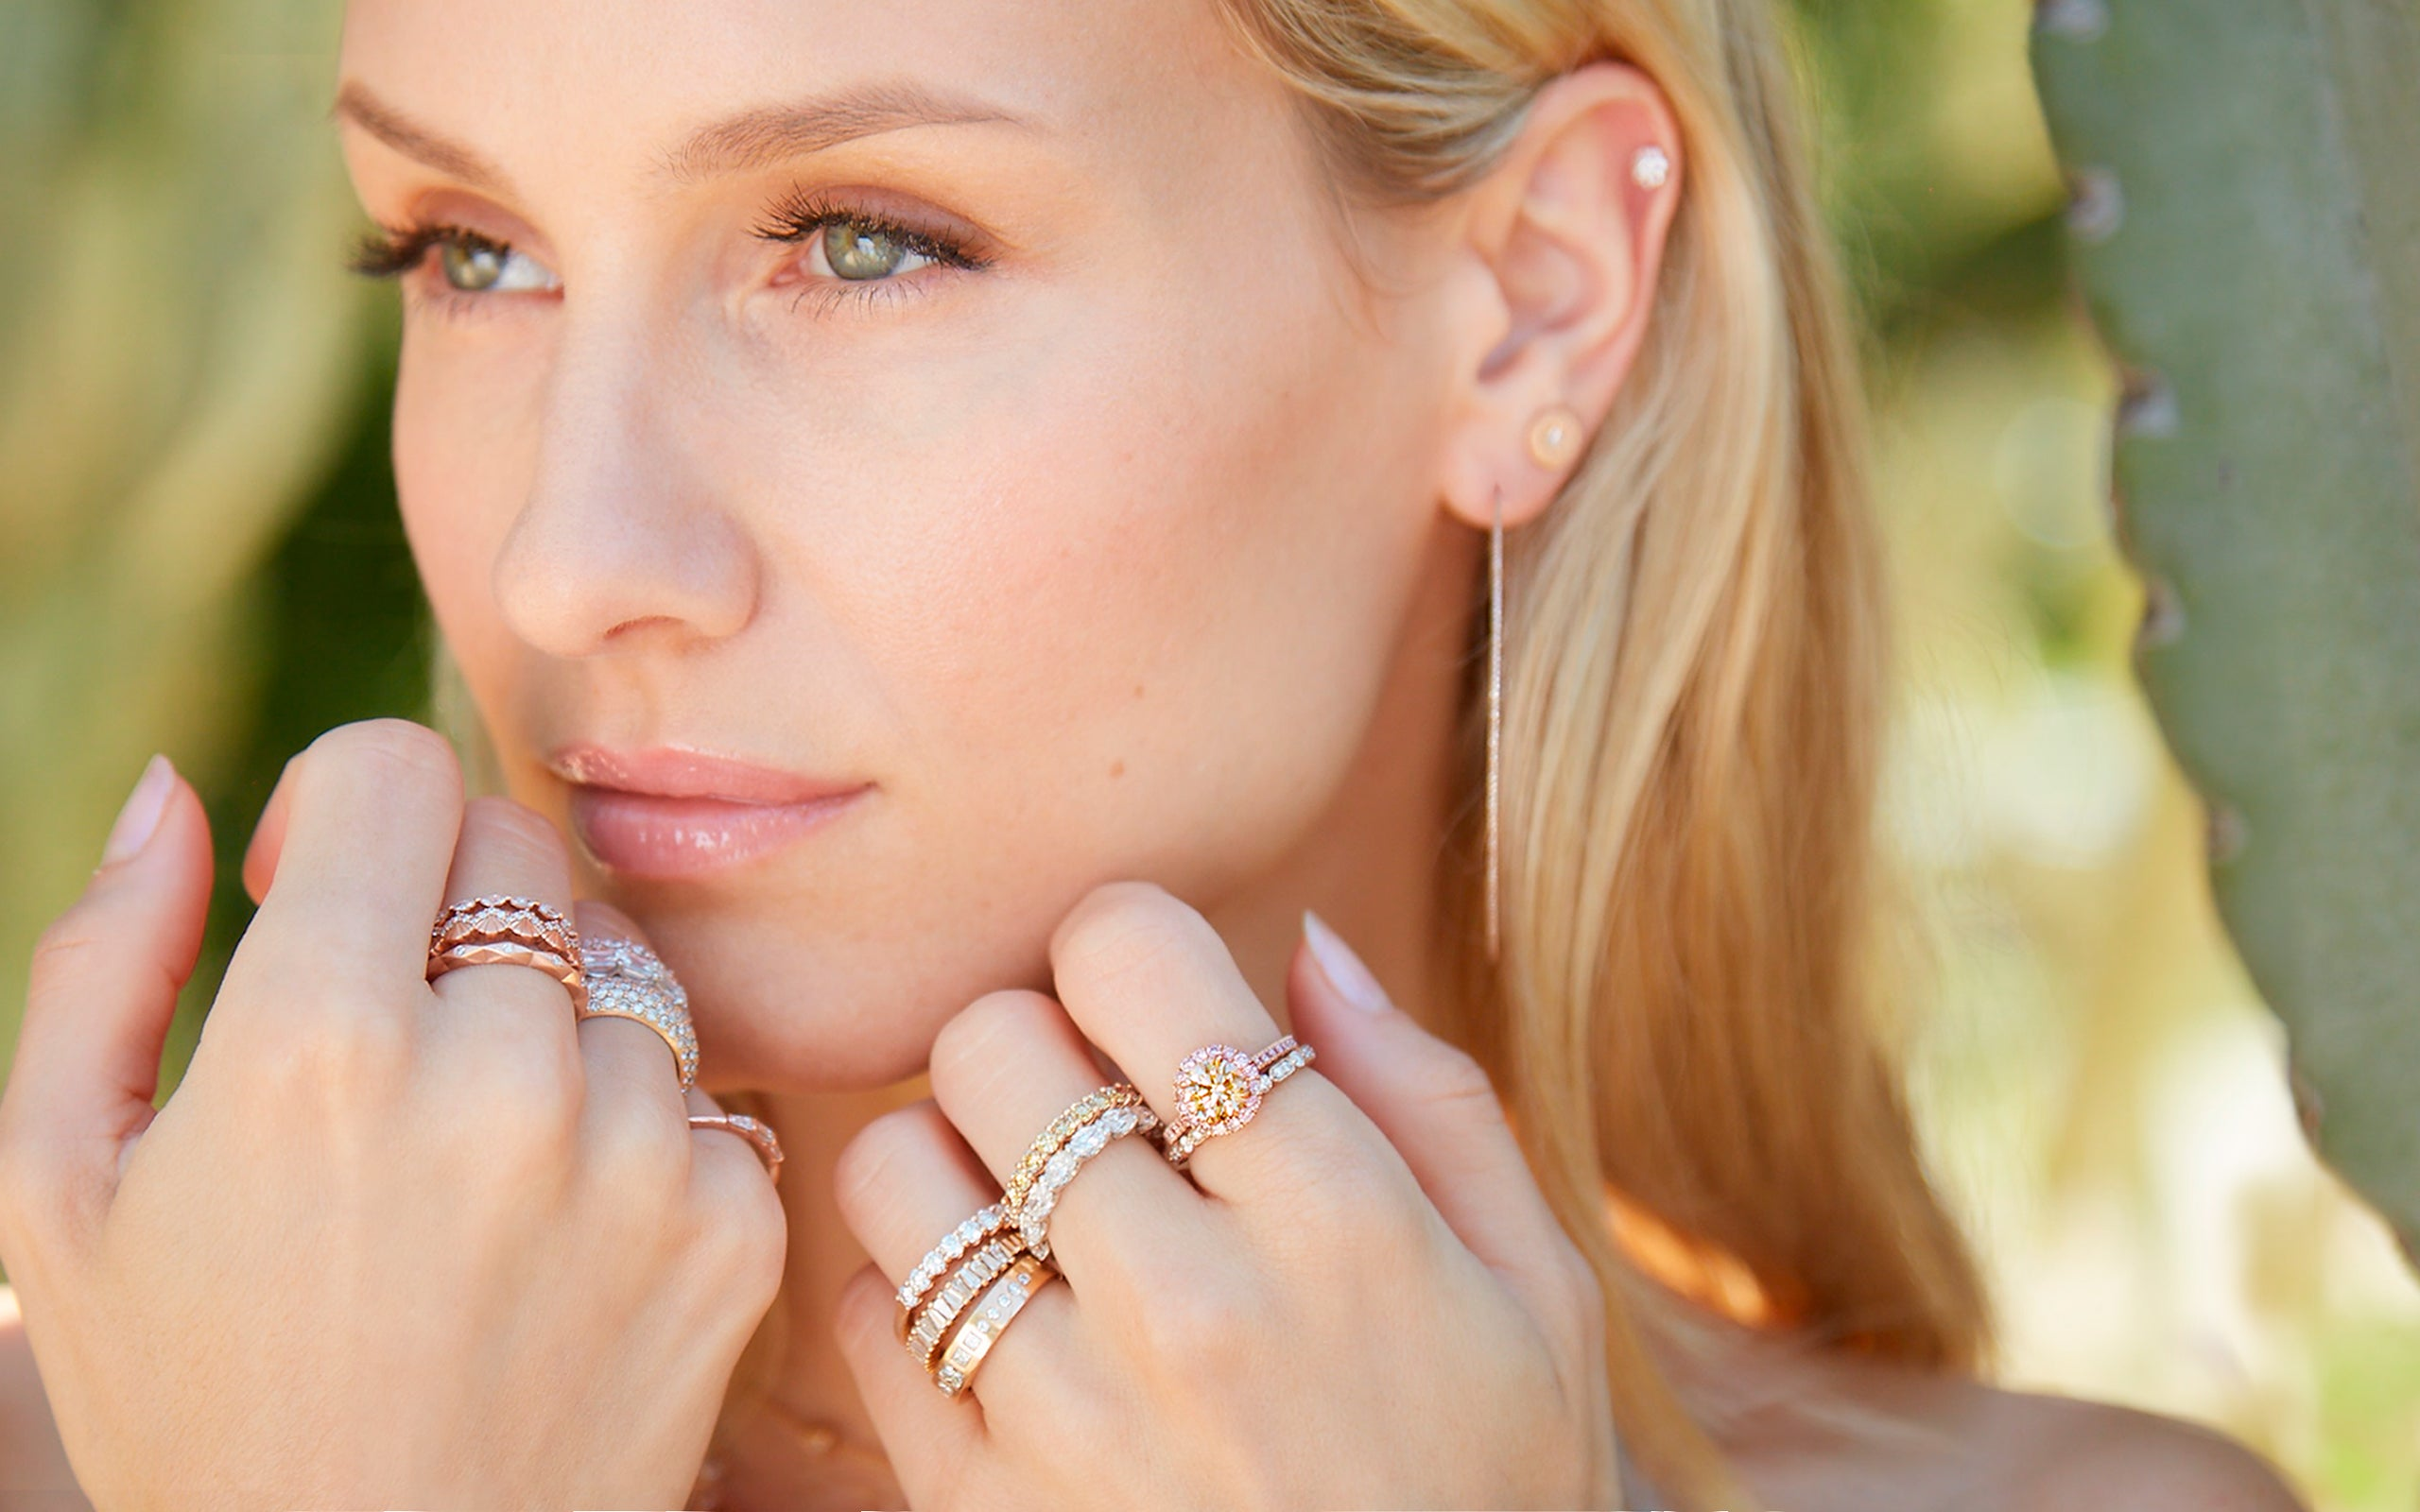 Model wearing our 24-piece rose gold Sweet Solace jewelry collection; phone 323-404-2959 if you need shopping assistance.